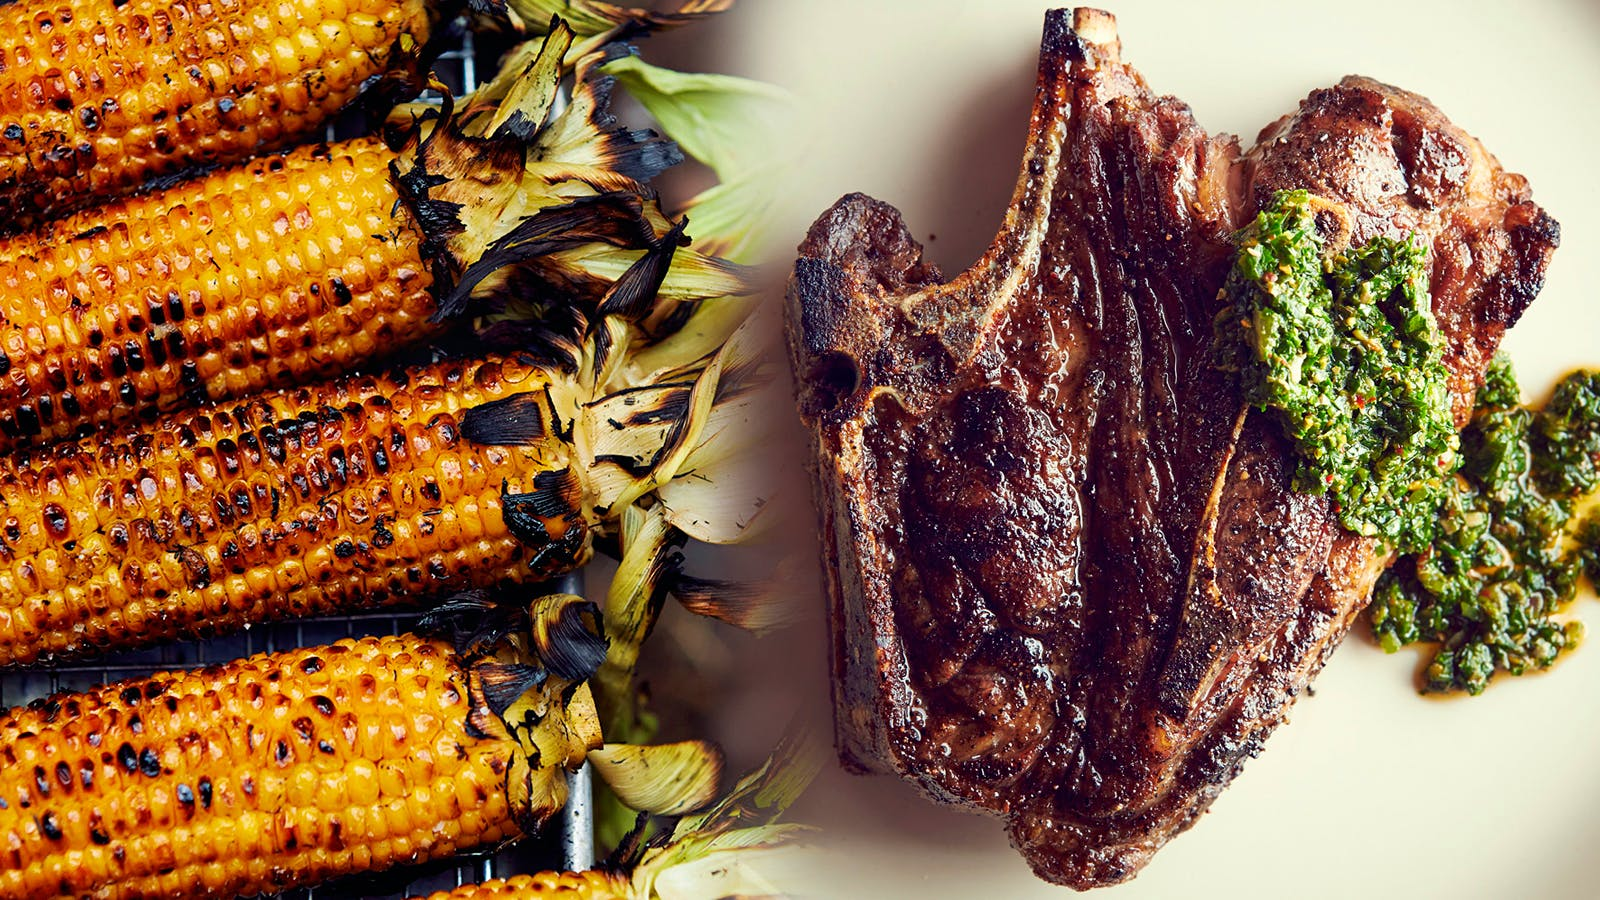 5 Favorite Recipes: Great Ideas for the Grill Beyond Steak and Burgers